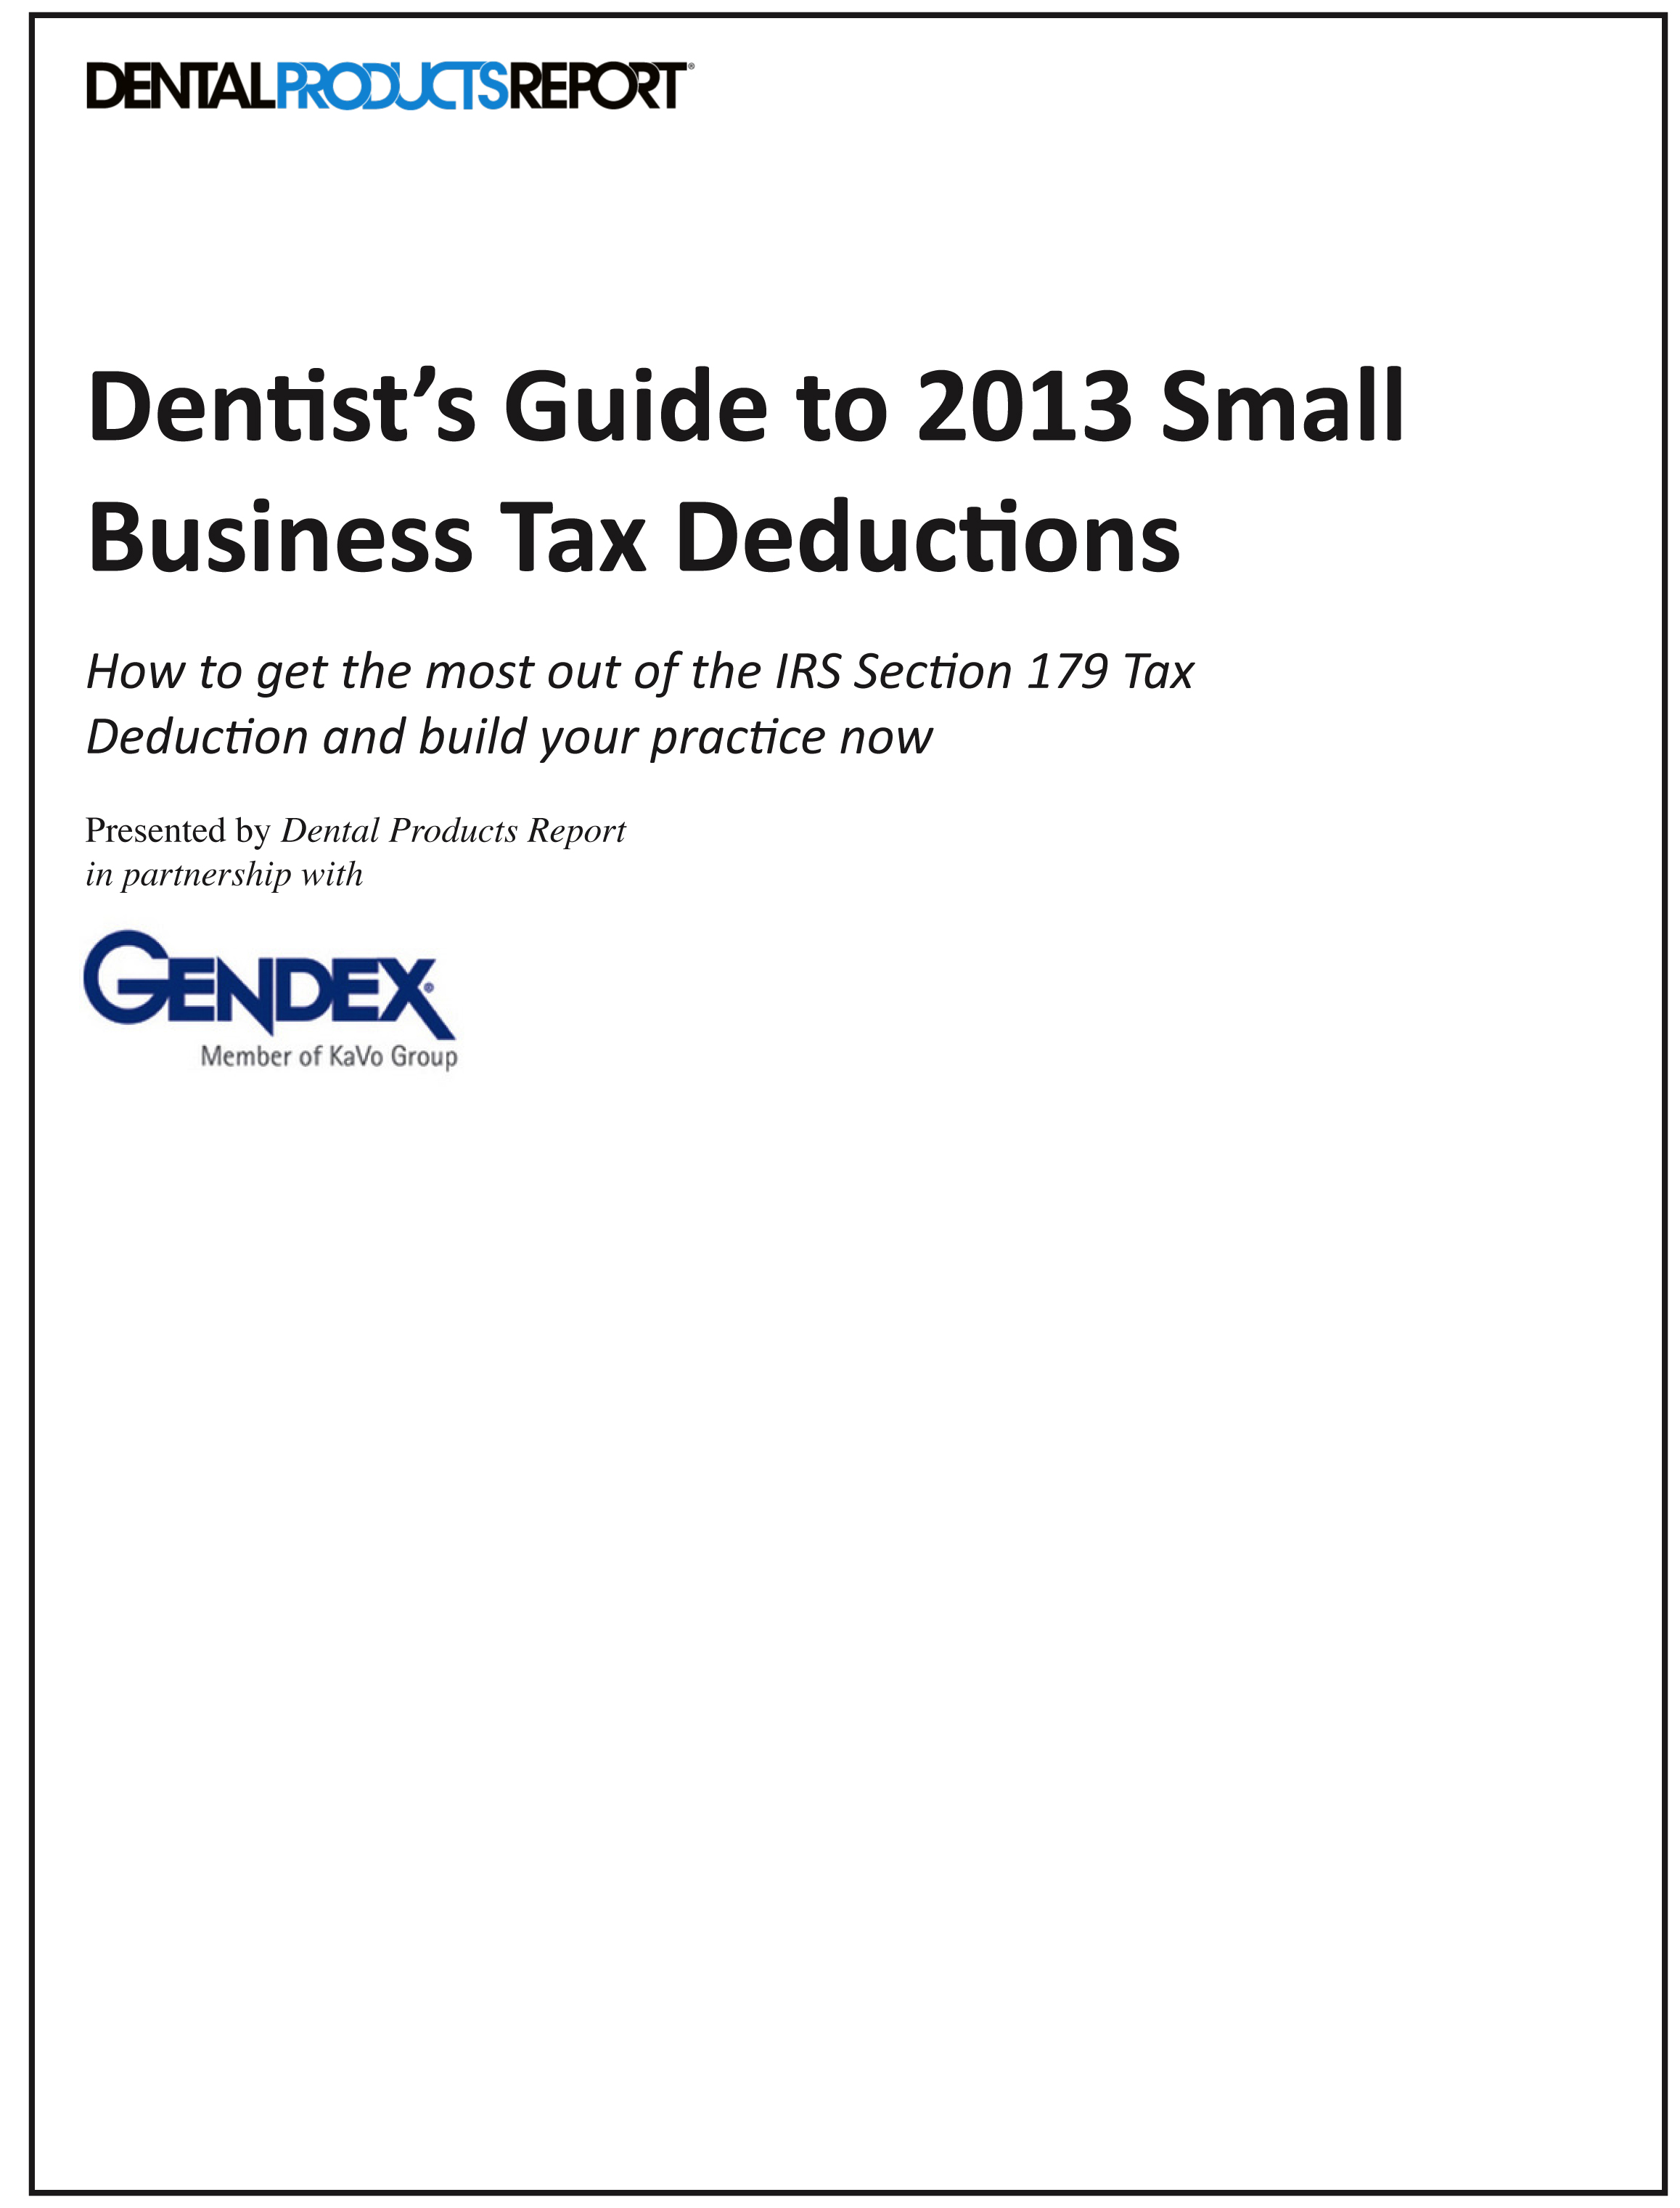 most out of the IRS Section 179 tax deduction on equipment purchases